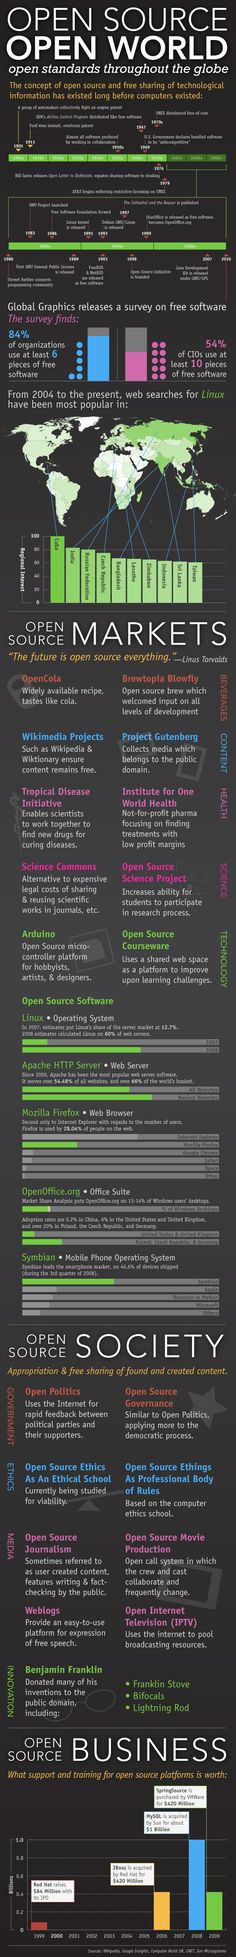 Open Source, Open World. Infographic on the history of open source software. (From 2008 or possibly 2010.)